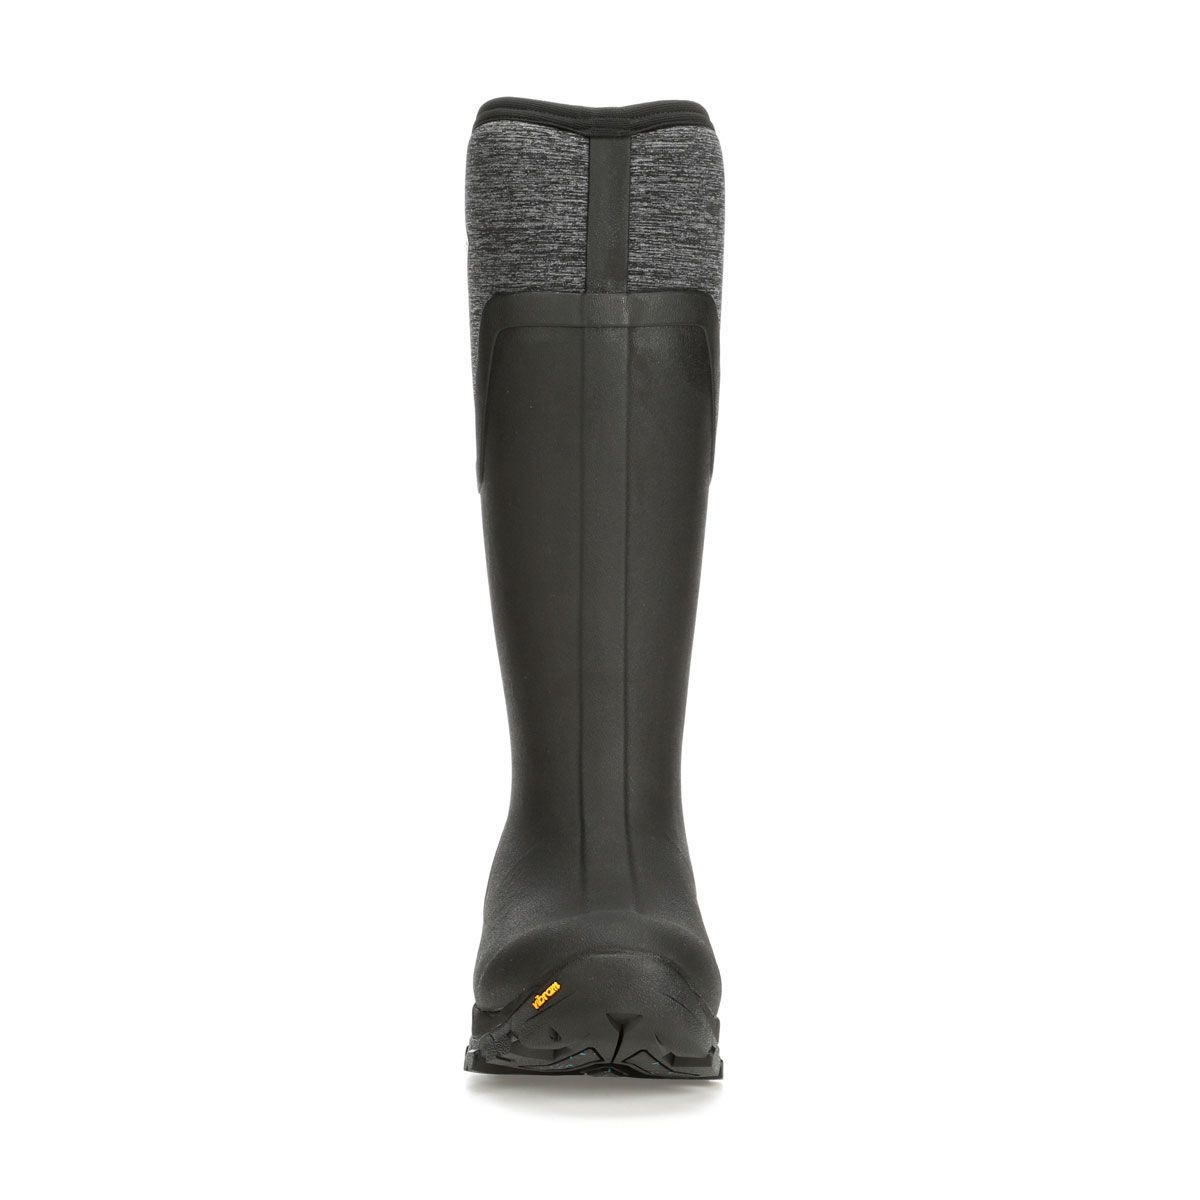 Extra image of Muck Boot - Arctic Ice Tall  - Black/Heather Jersey - UK 4